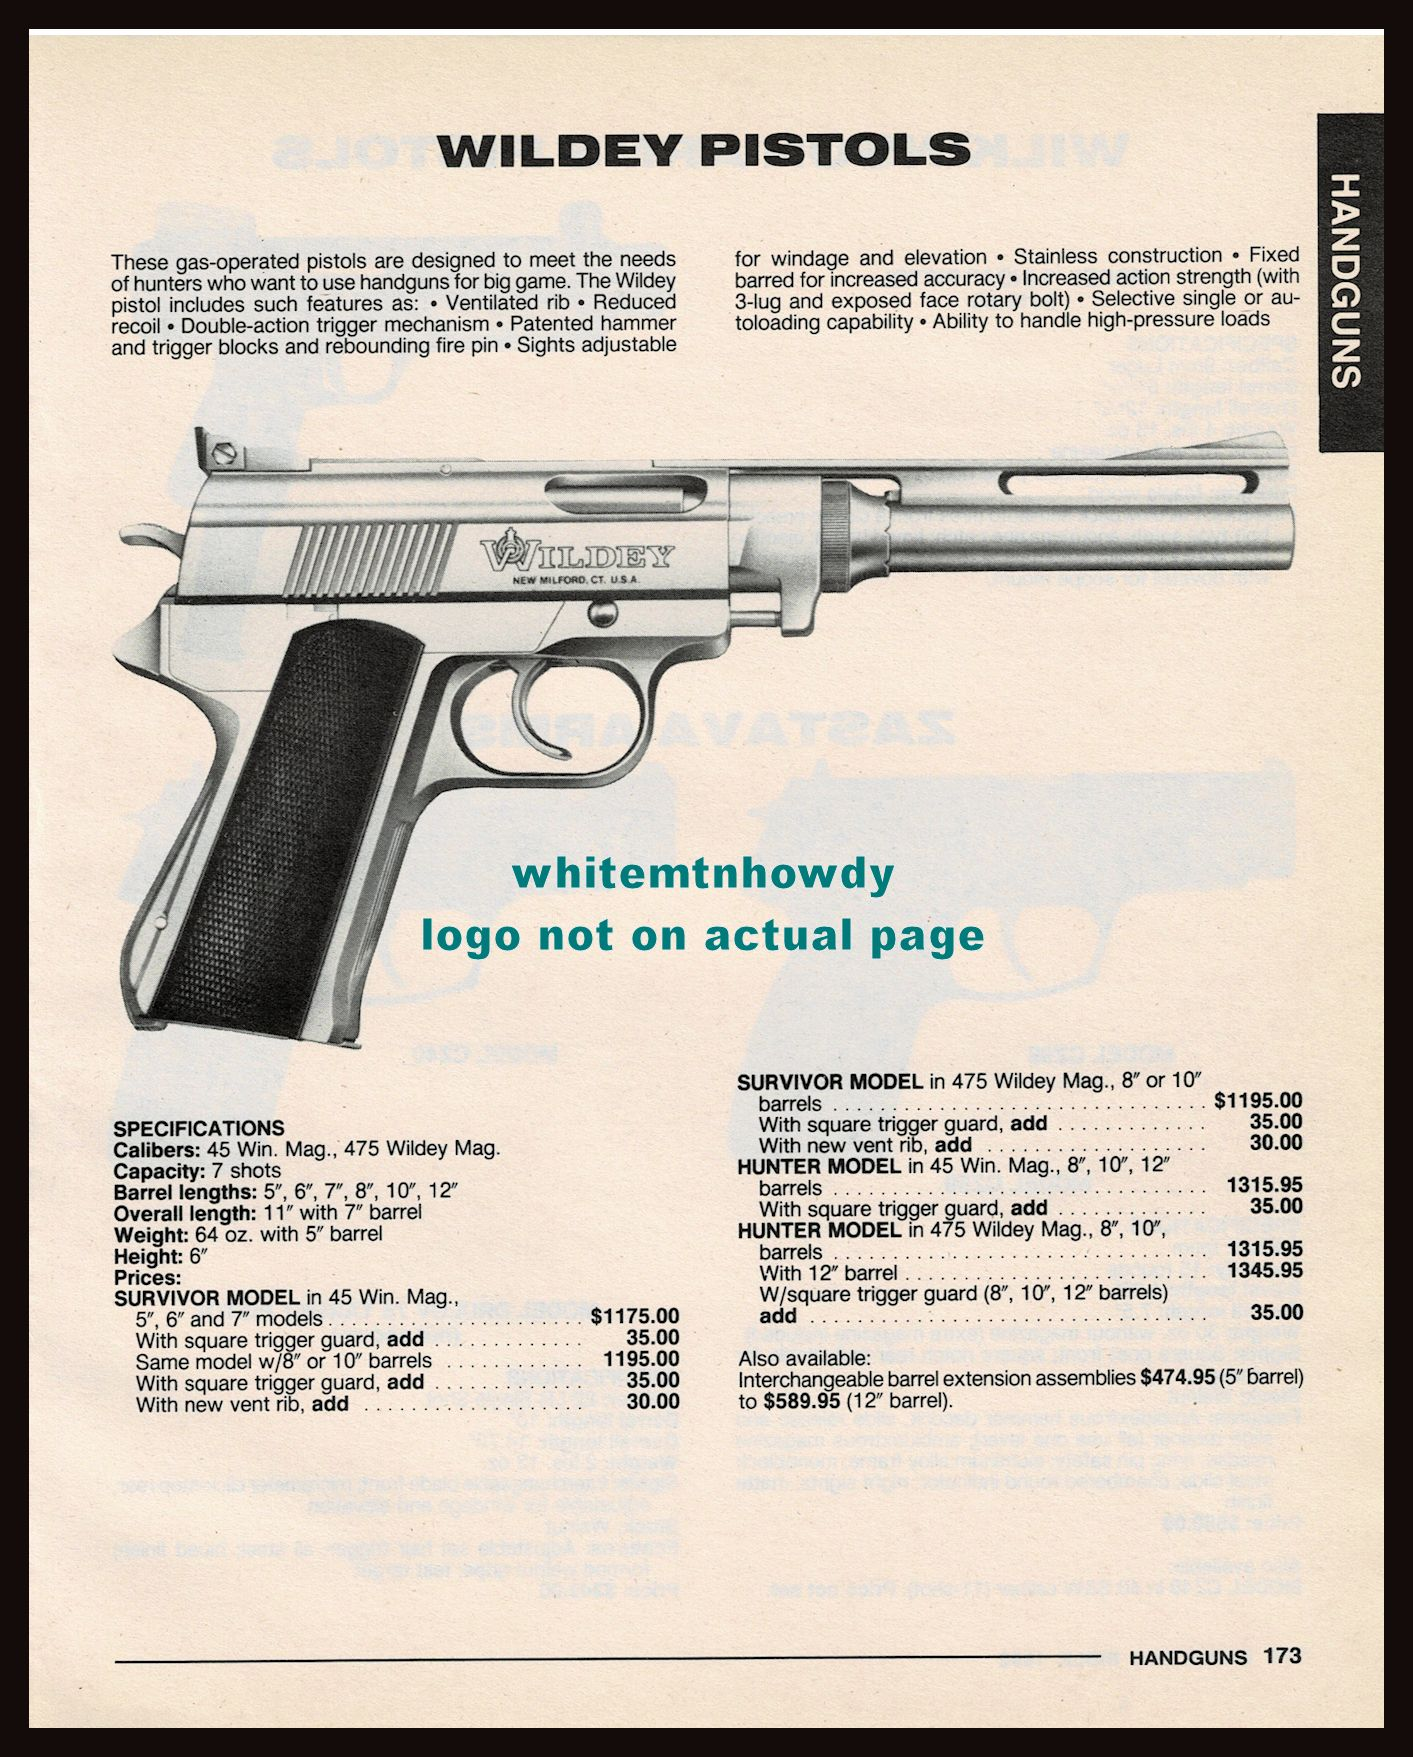 Pin On Other Gun Advertising Articles